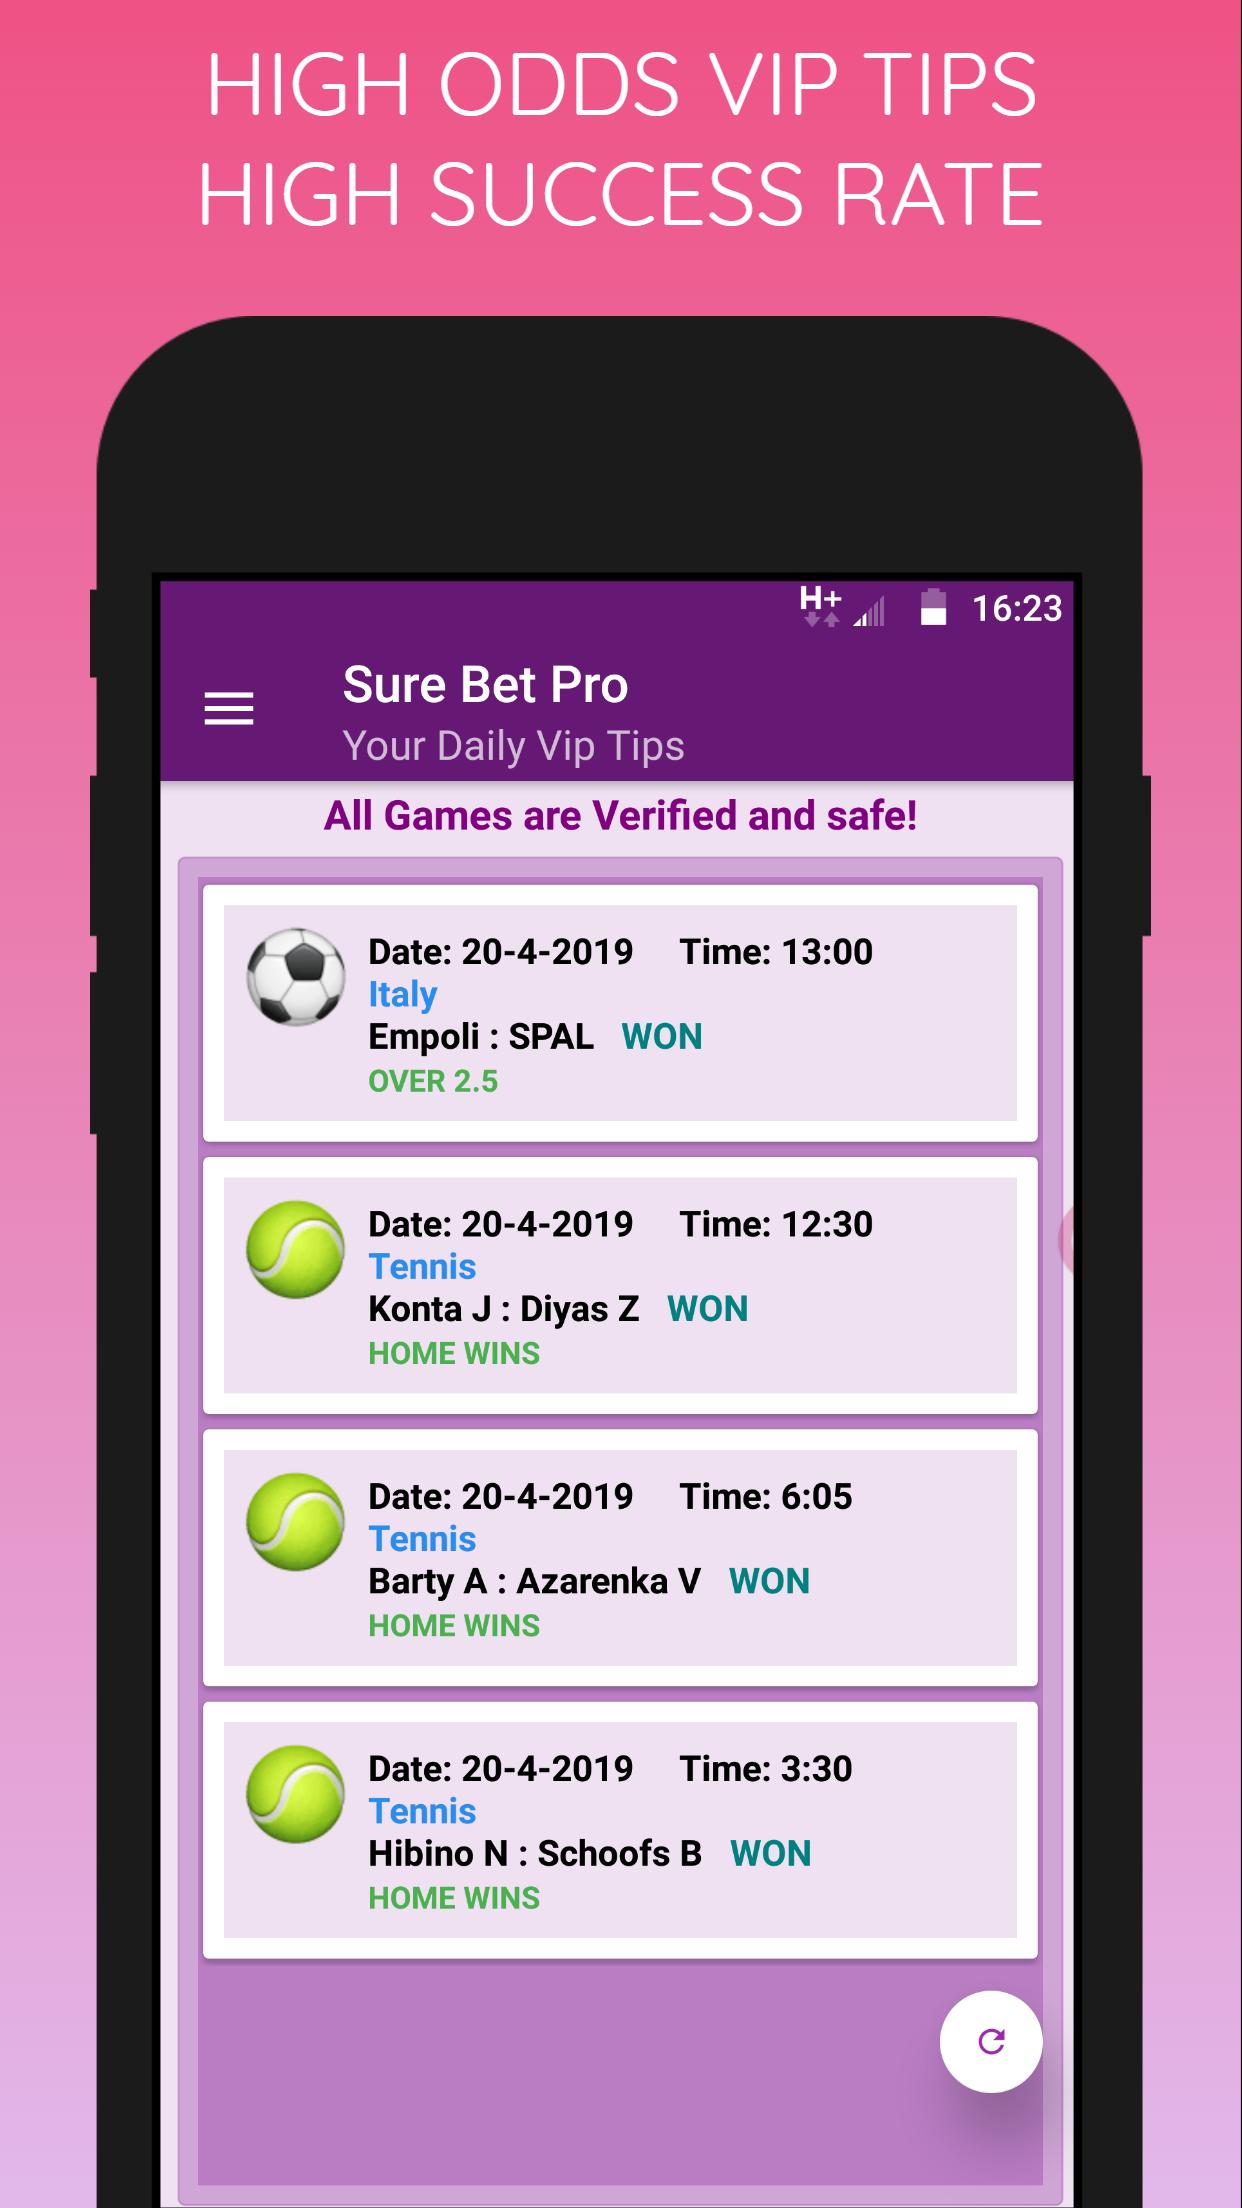 Professional betting tips apk apps taxes on sports betting in nevada